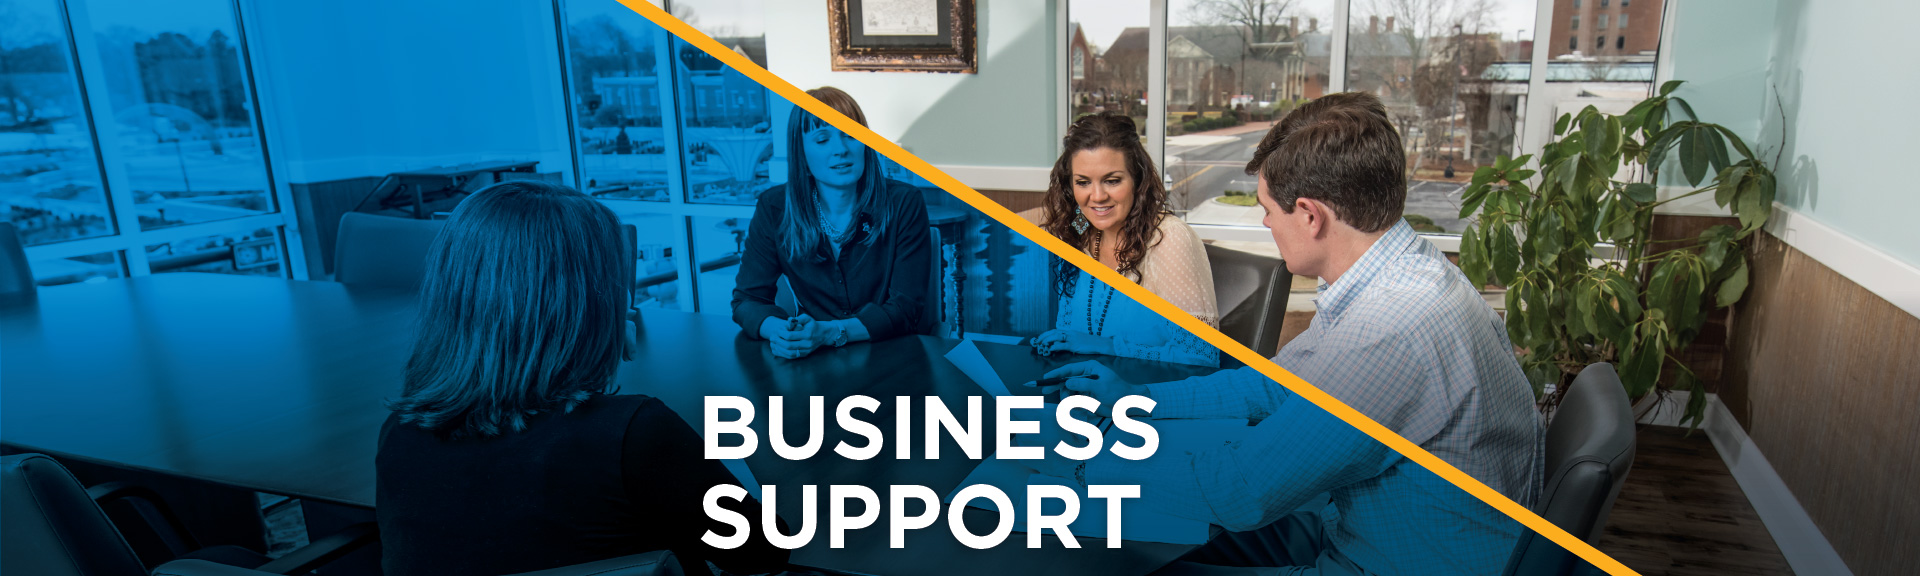 BusinessSupport